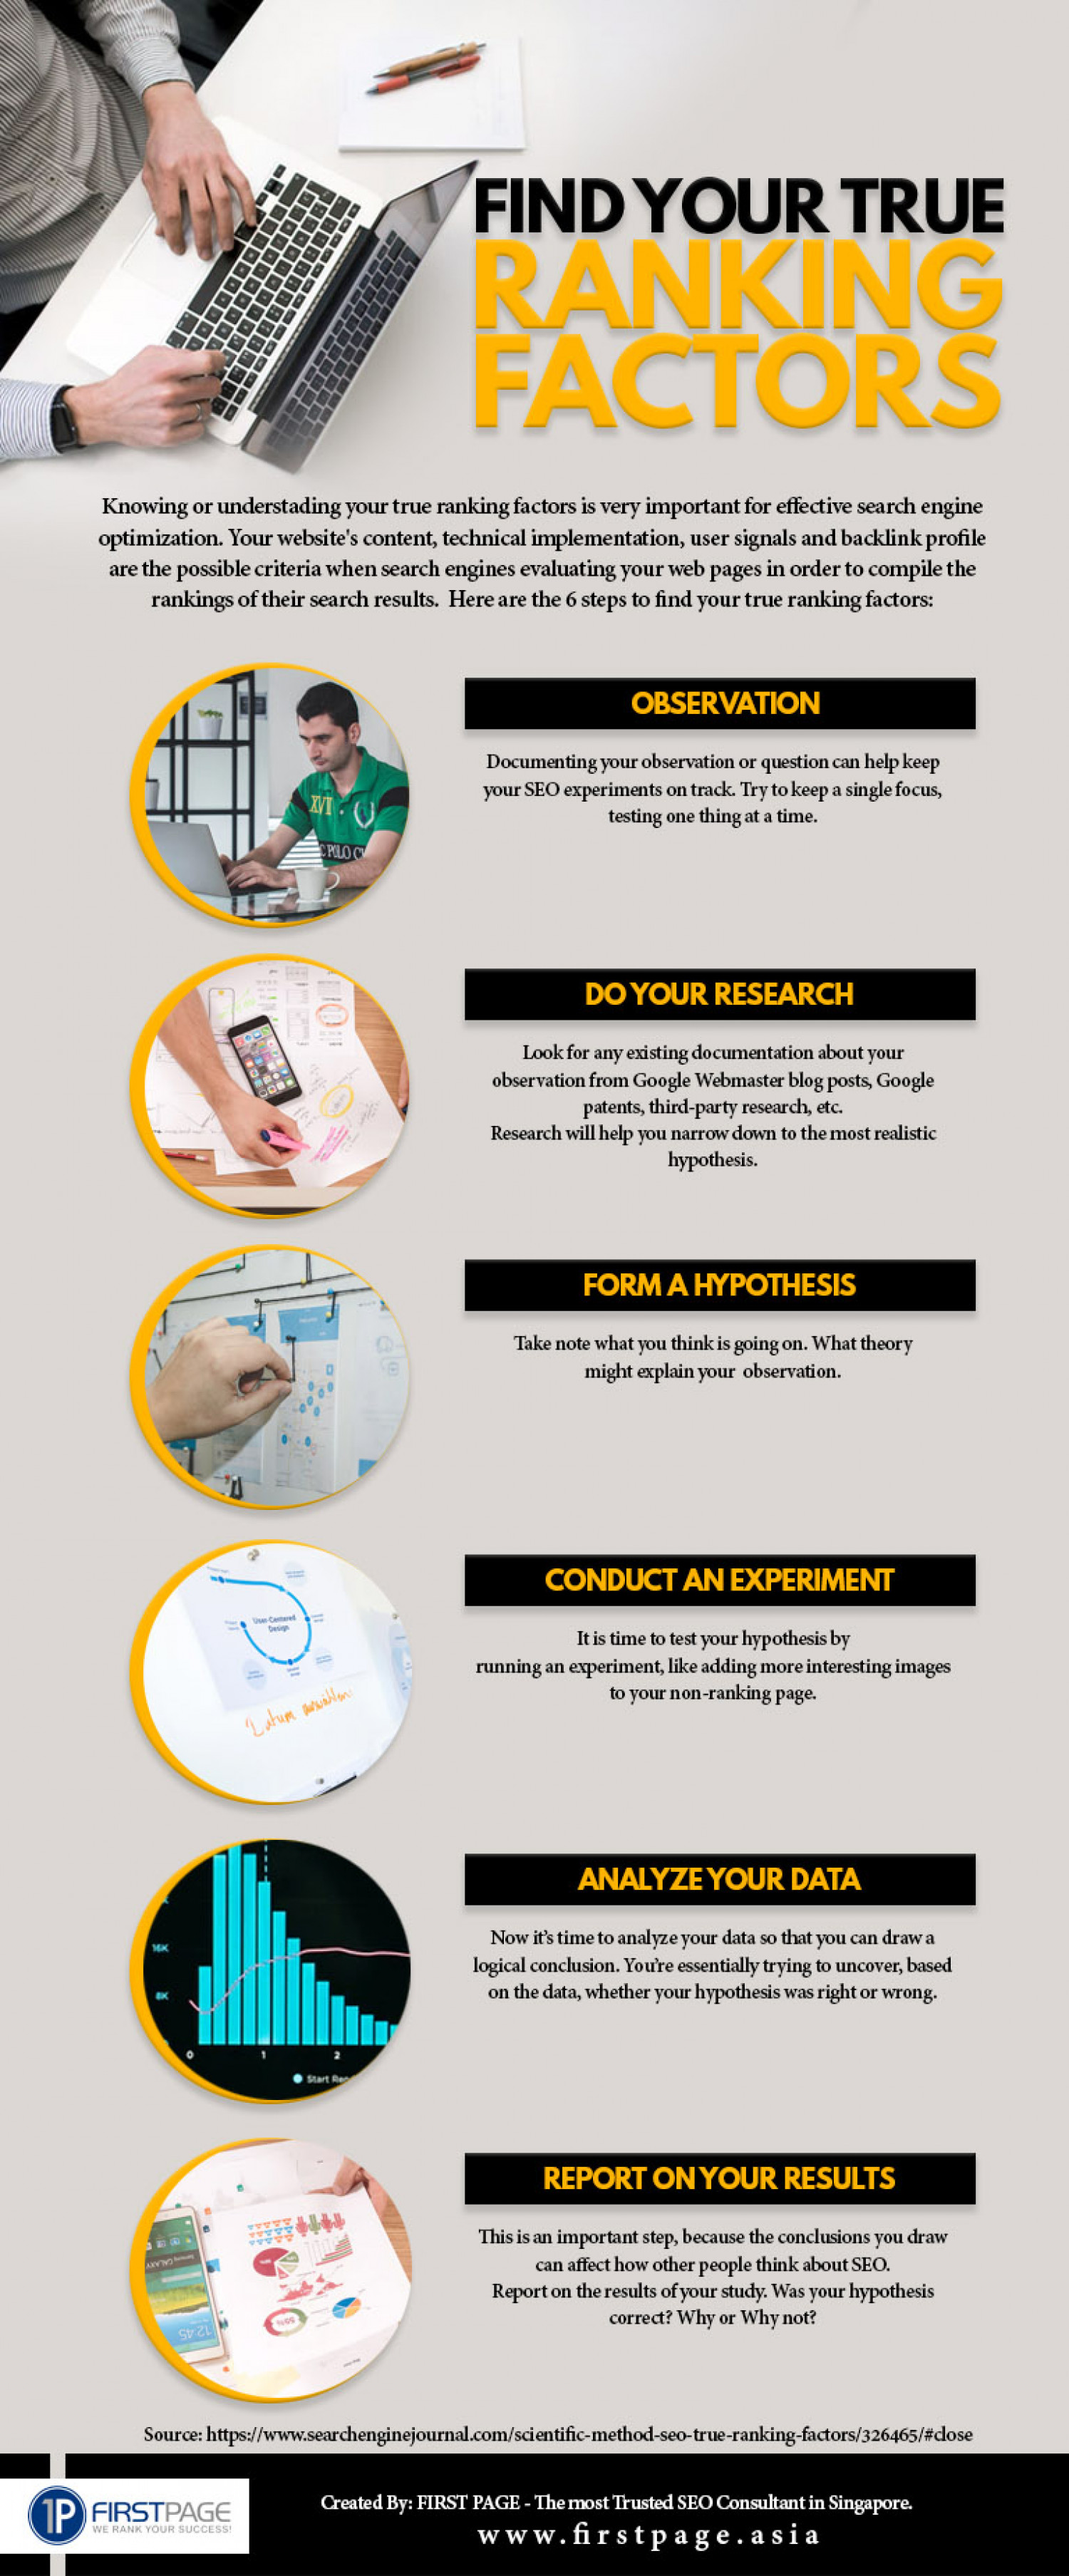 SEO Consultant | Find Your True Ranking Factors Infographic